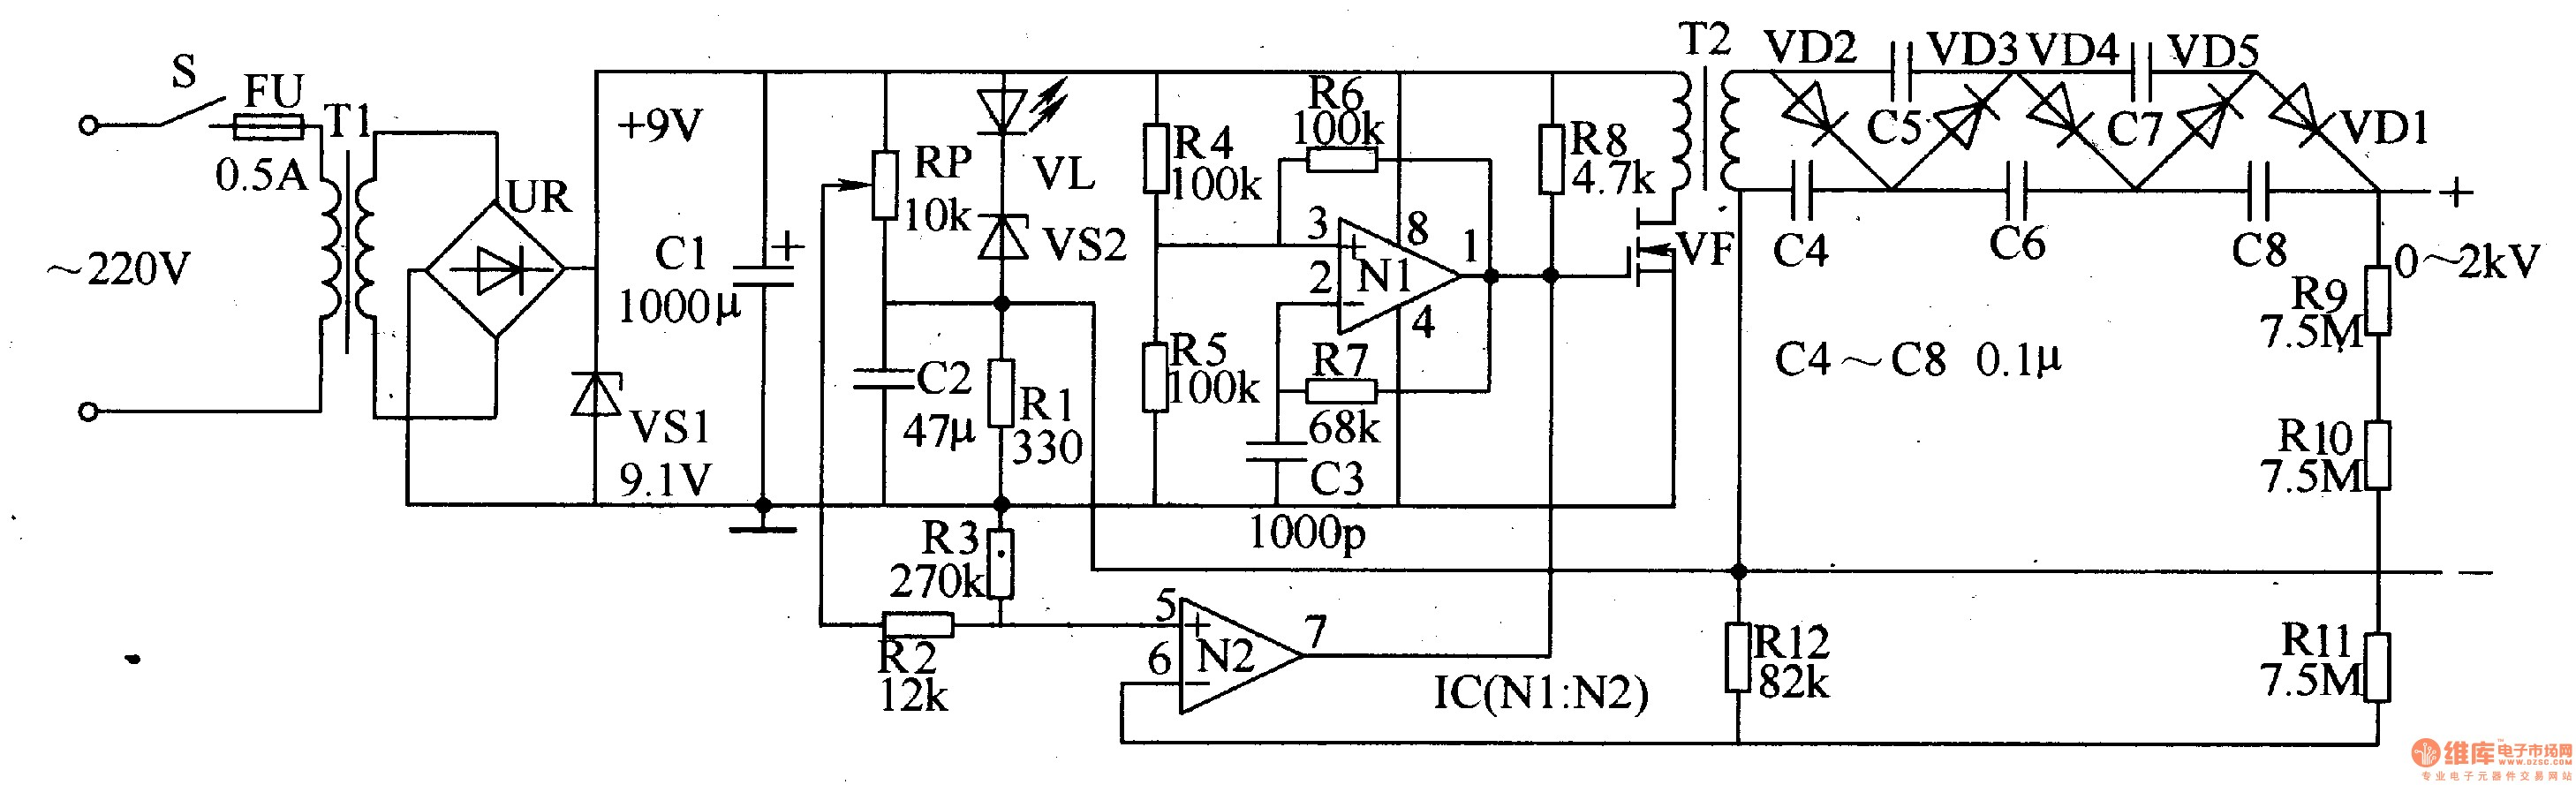 Regulated Power Supply Wiring Diagram For Computer Power Supply Pin